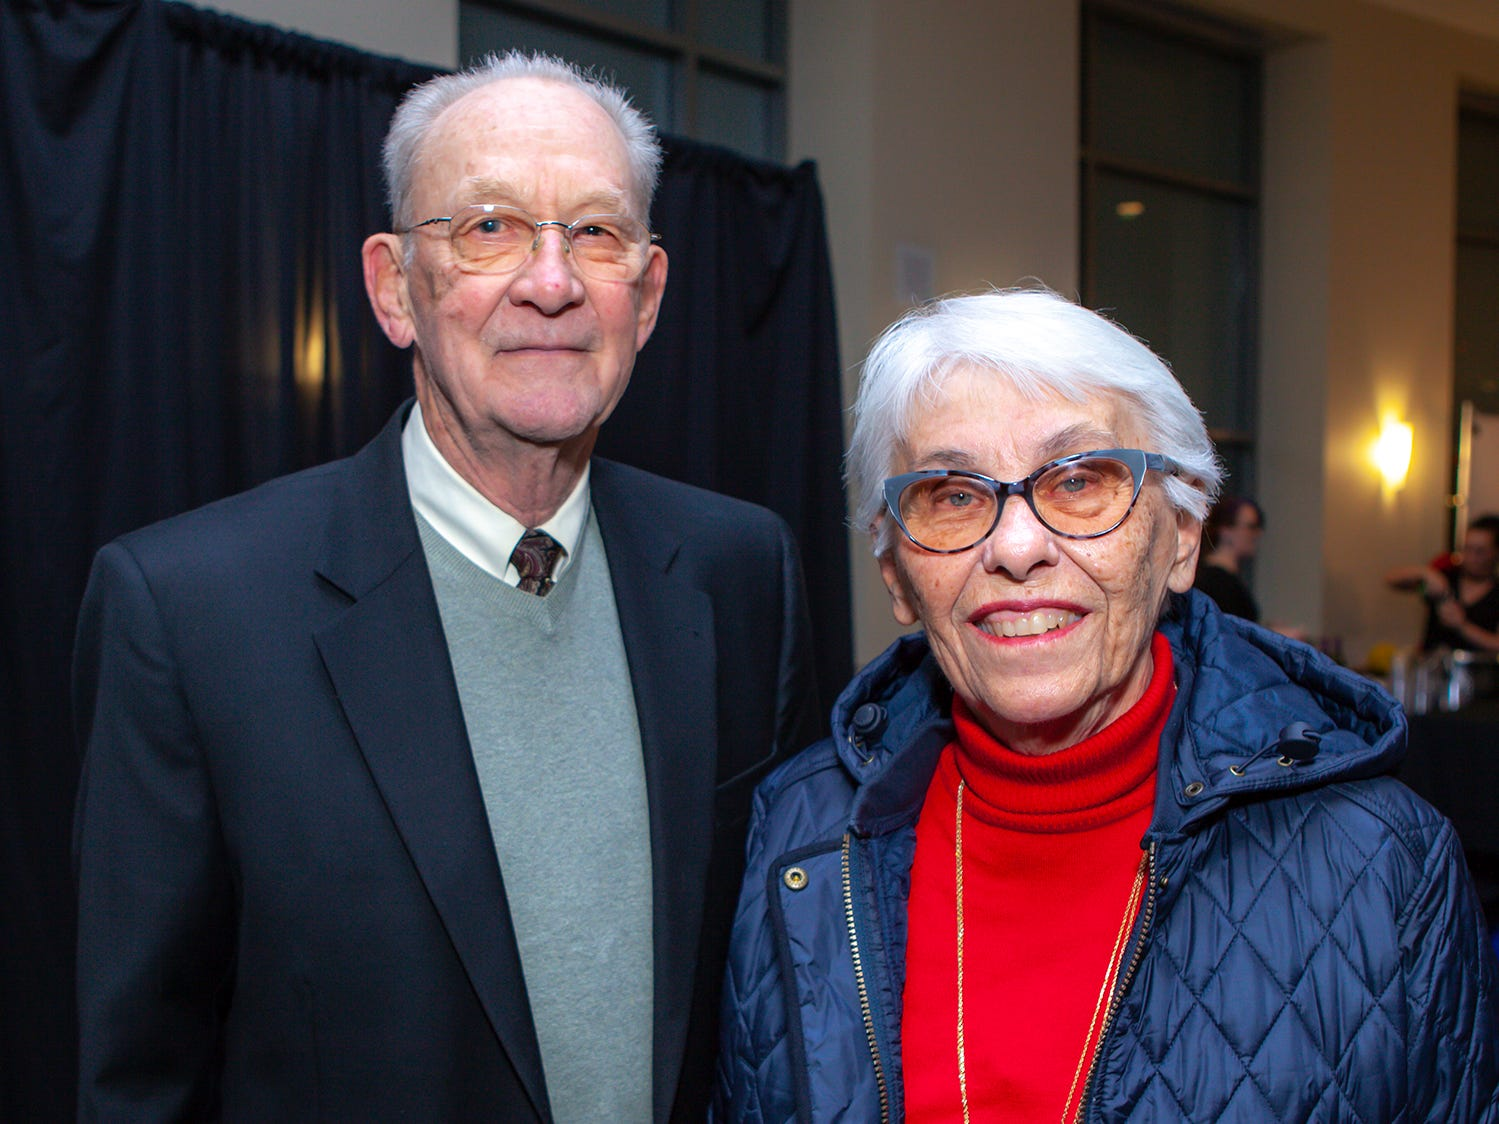 Charles and Nancy Pigg at the 2019 Excellence in Education Gala, hosted by the City Schools Foundation on Friday, Jan. 25, 2019 at Stones River Country Club in Murfreesboro